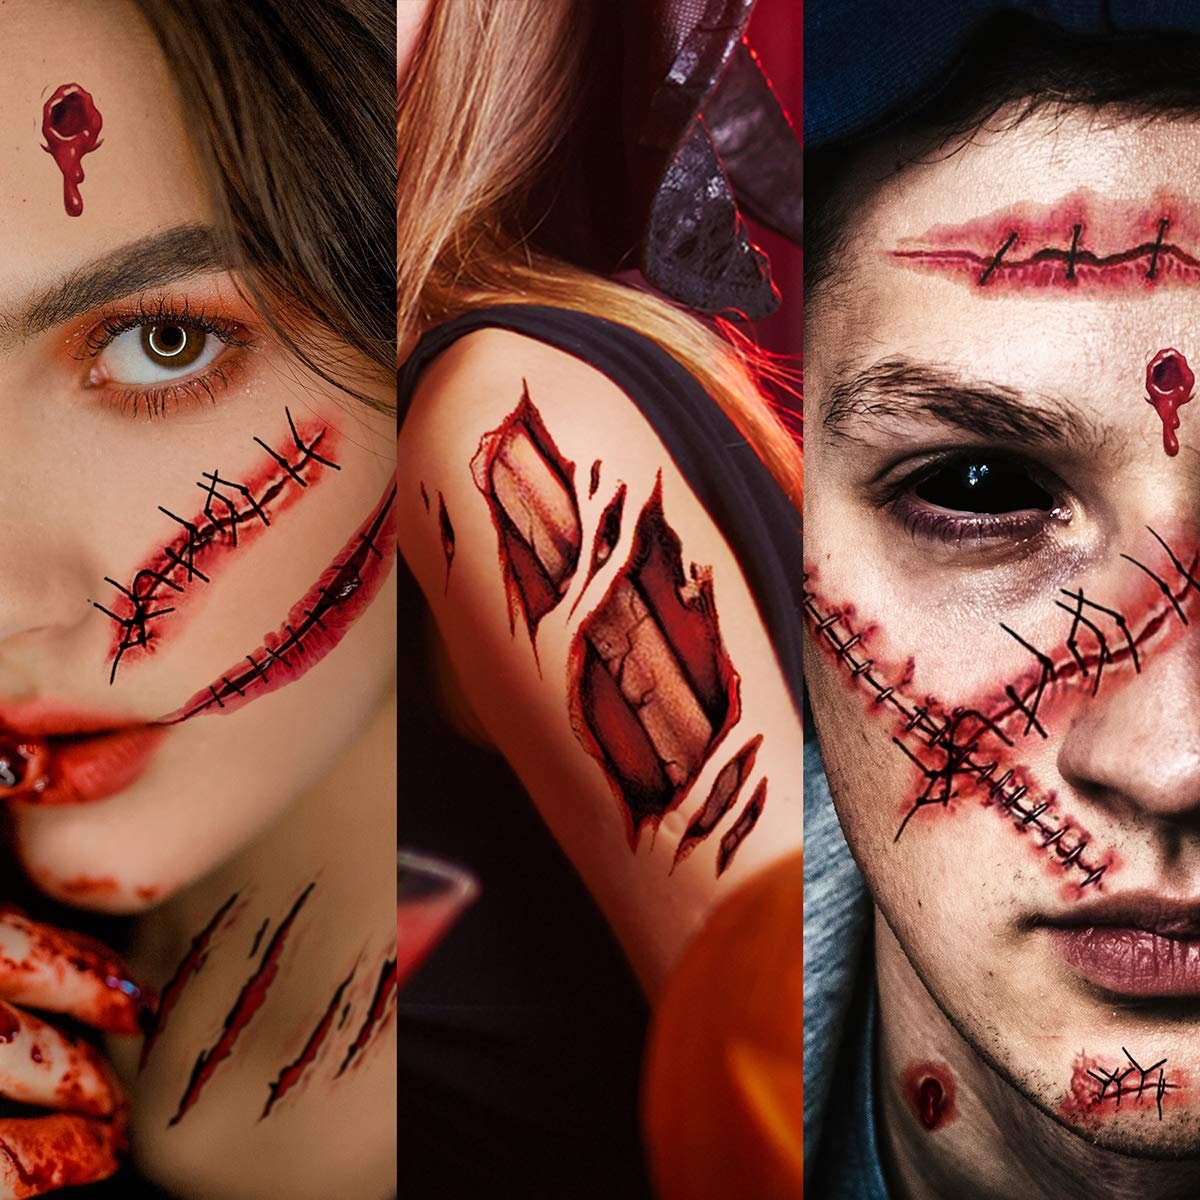 Waterproof Temporary Tattoo Sticker Halloween 3D Zombie Scar Fake Bloody Wound for Cosplay Party Masquerade Prank Makeup Props Over 40 Halloween Themed Patterns Designs on 10 Sheets